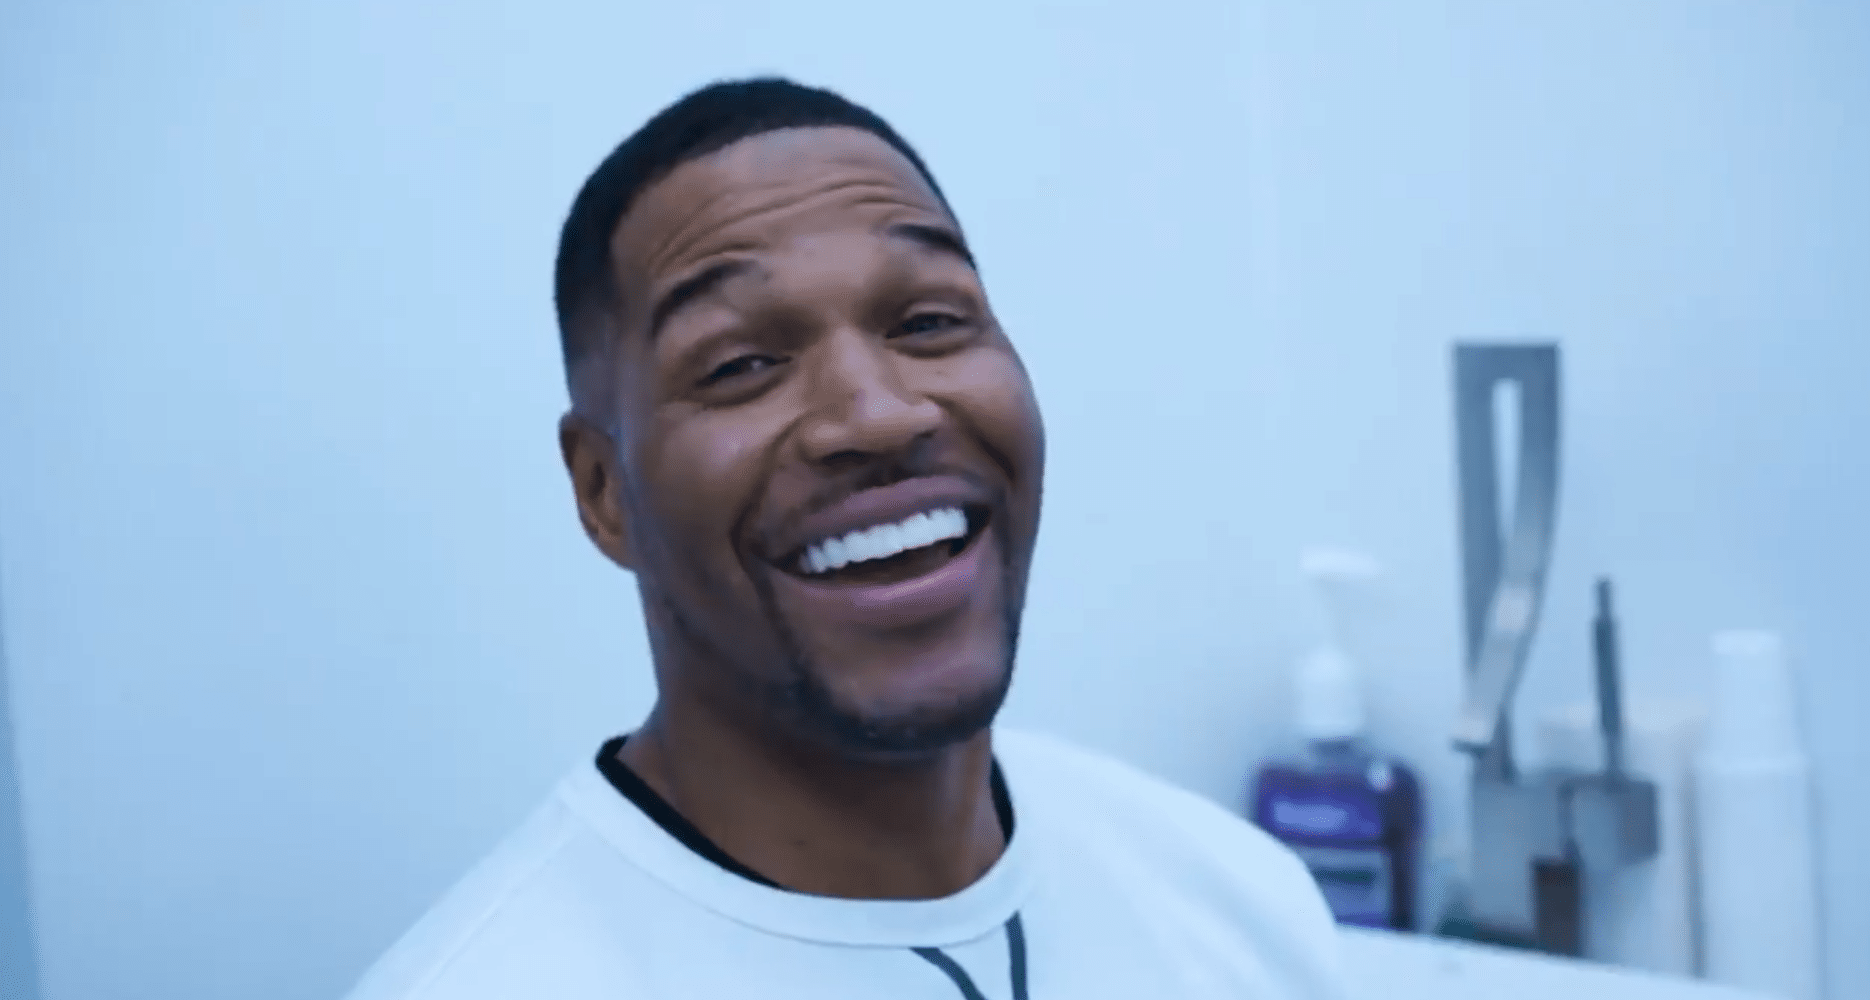 Michael Strahan Closes Famous Tooth Gap, People Guess It's An April Fools Prank